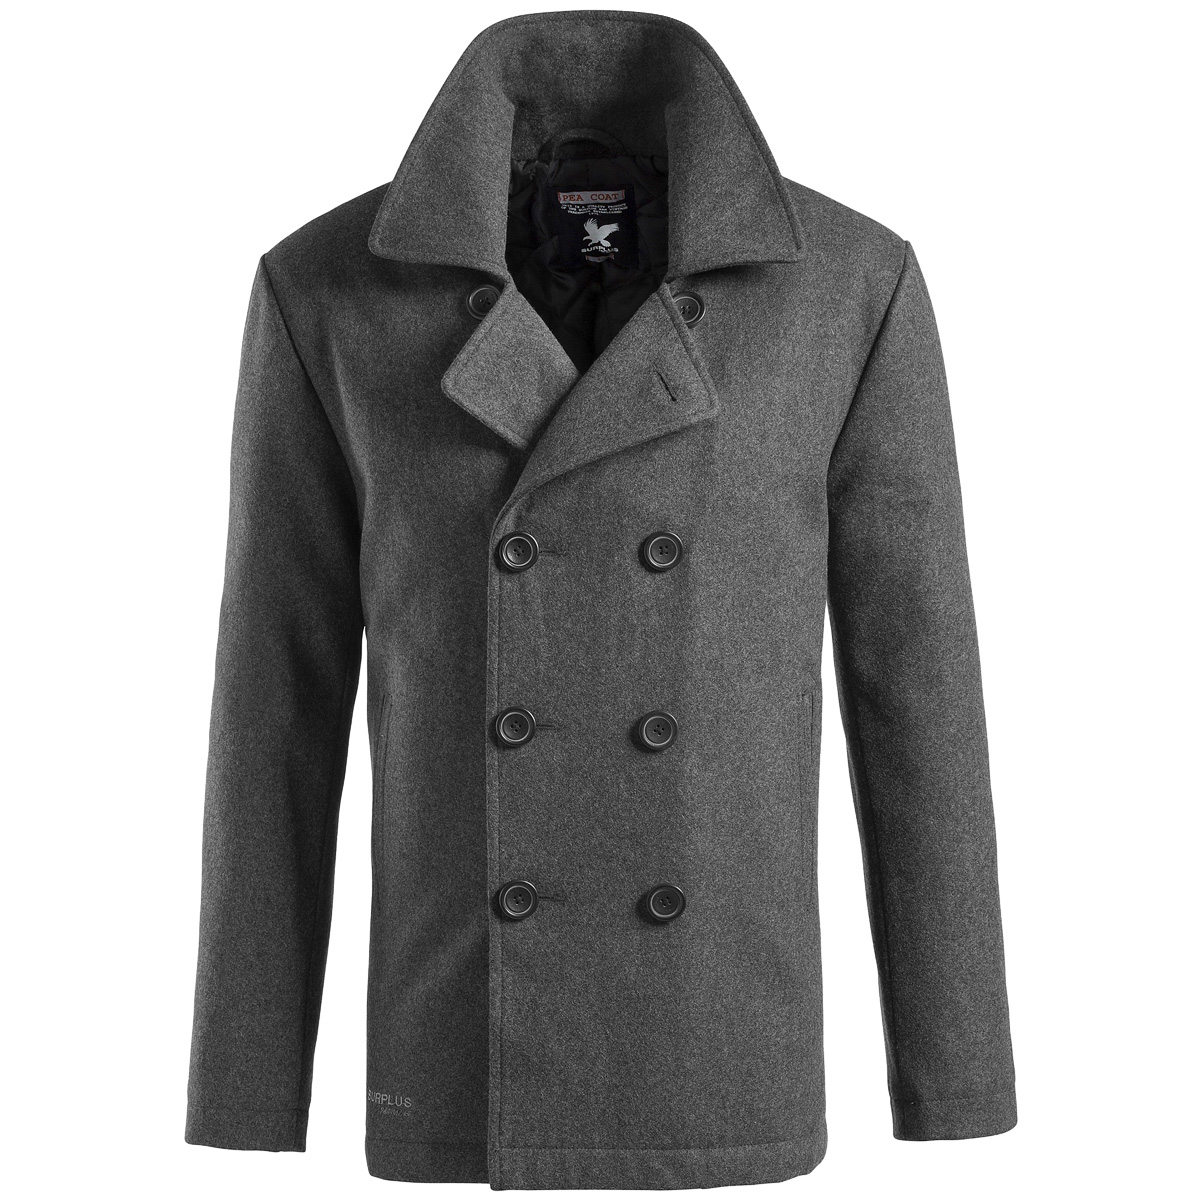 SURPLUS CLASSIC NAVY PEA COAT WARM MENS WINTER WOOL REEFER ...